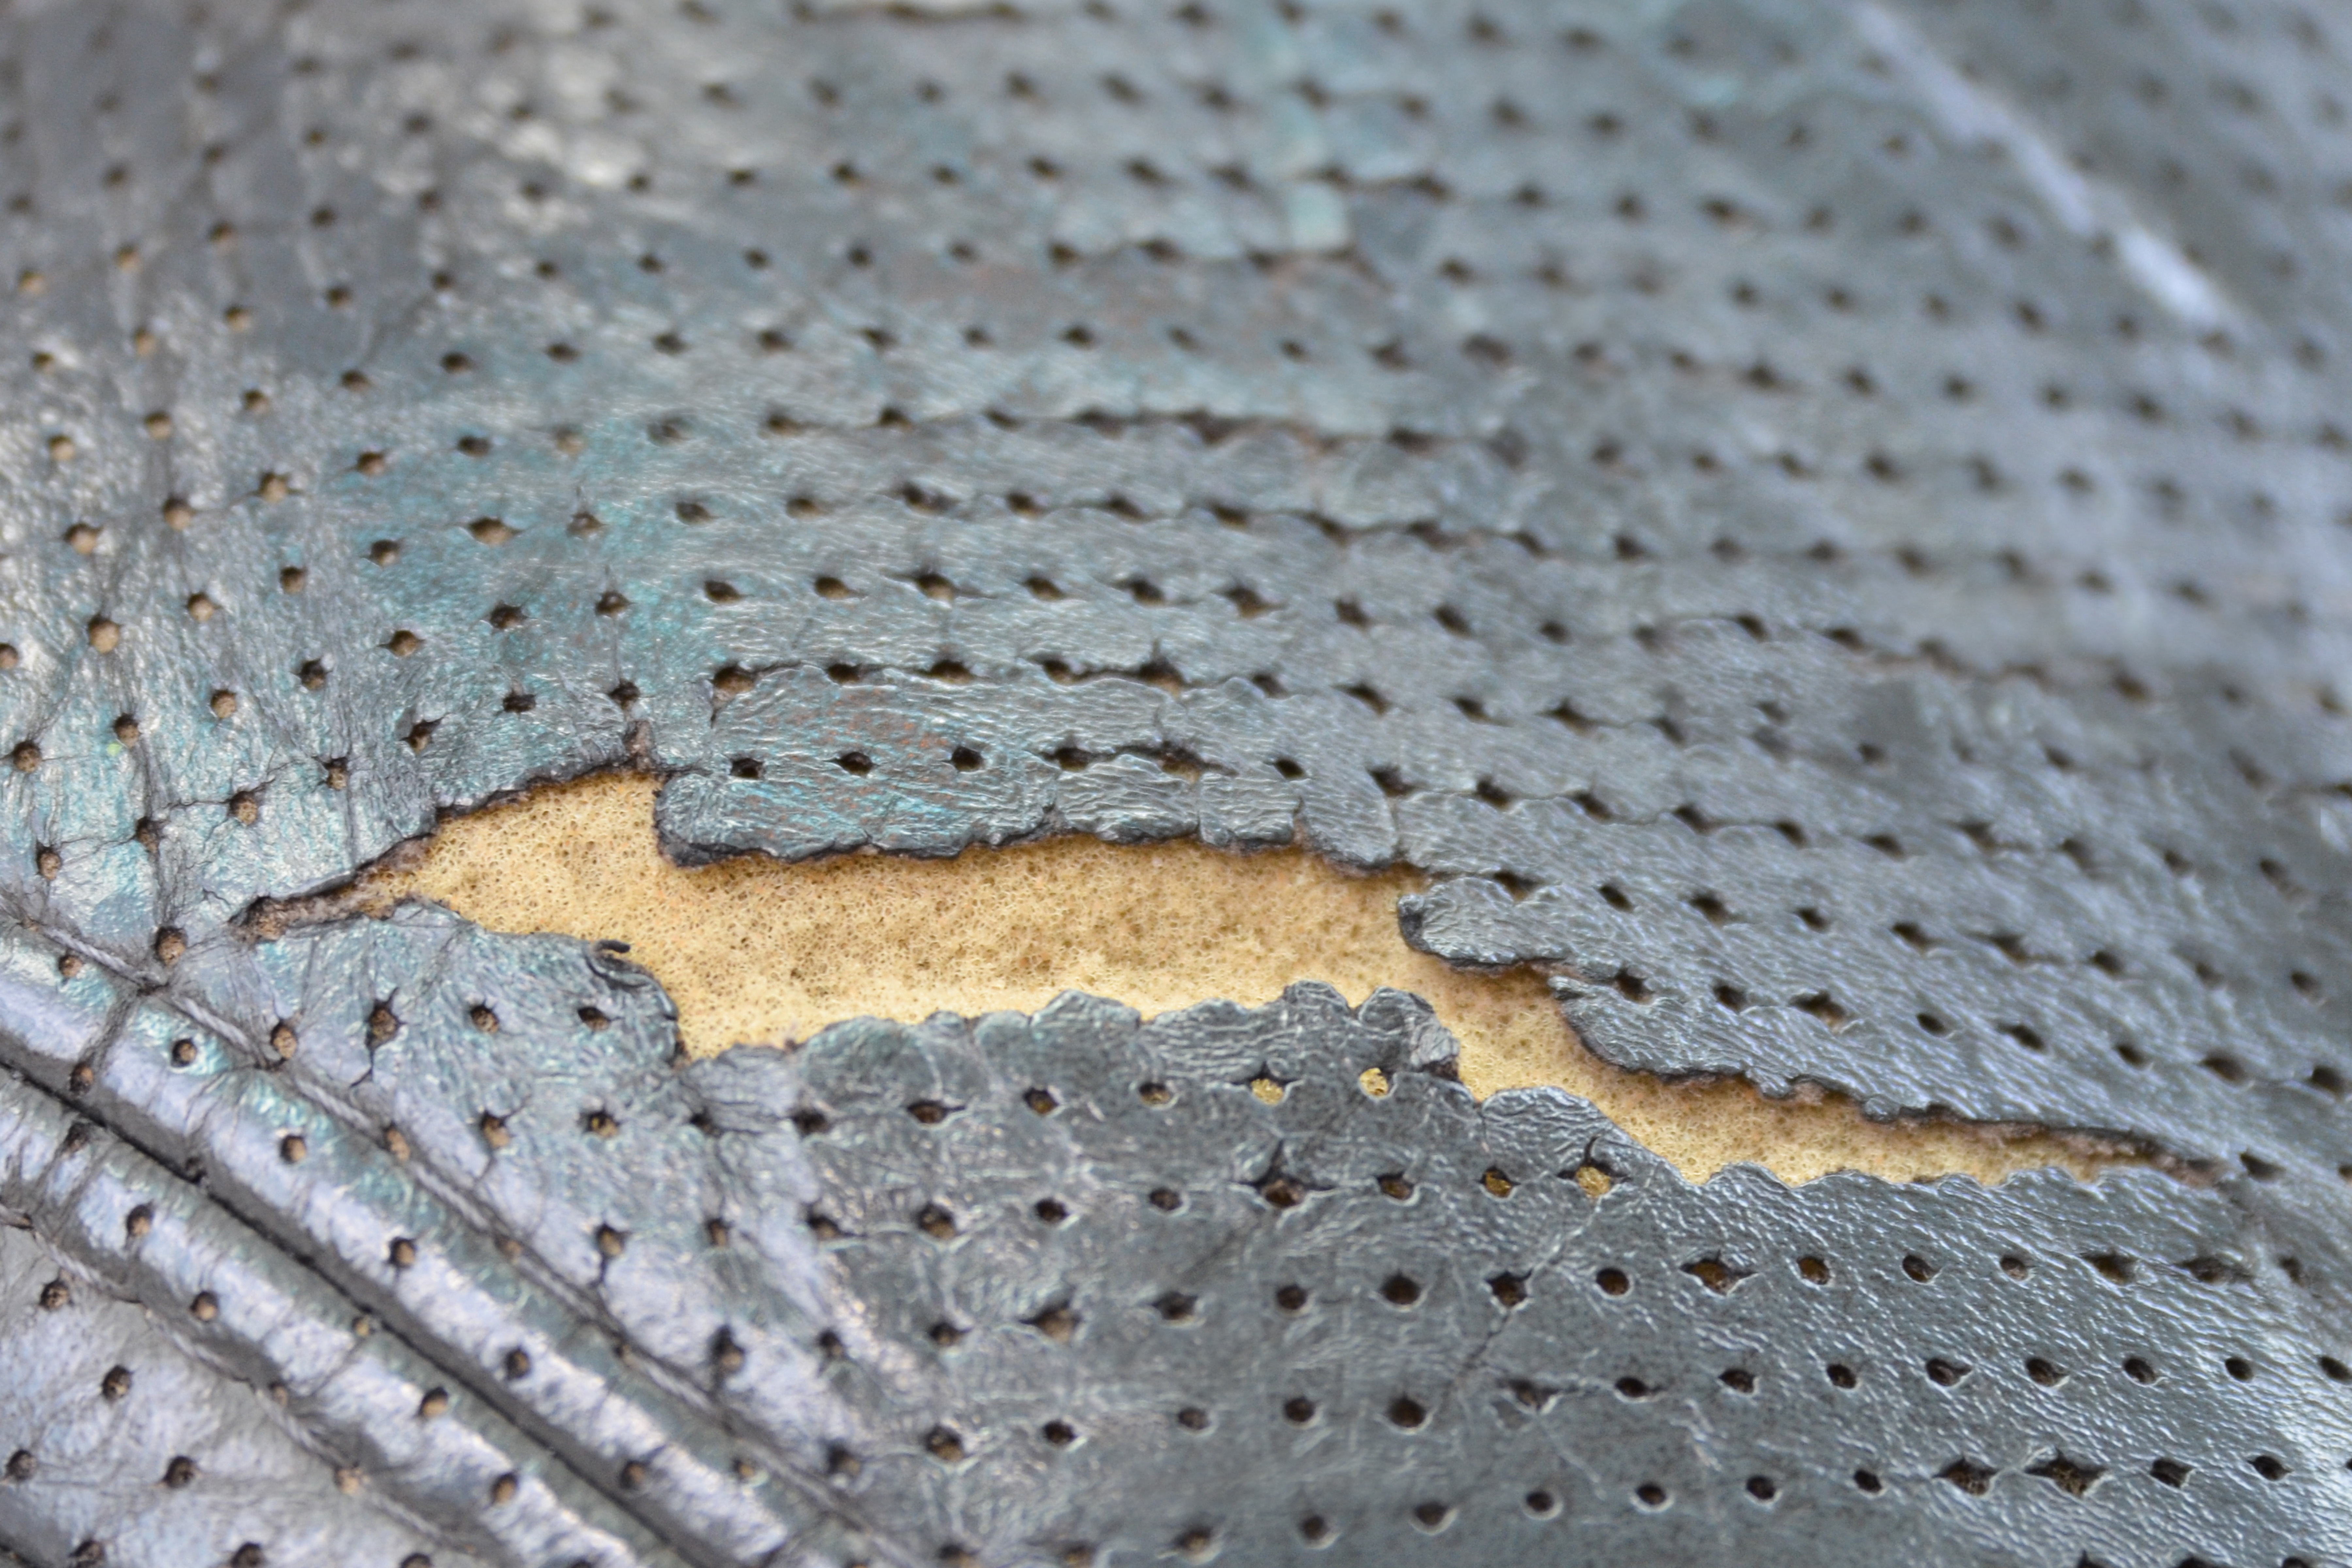 Sensational How To Fix A Burn Hole In A Car Seat Or Carpet It Still Runs Download Free Architecture Designs Scobabritishbridgeorg